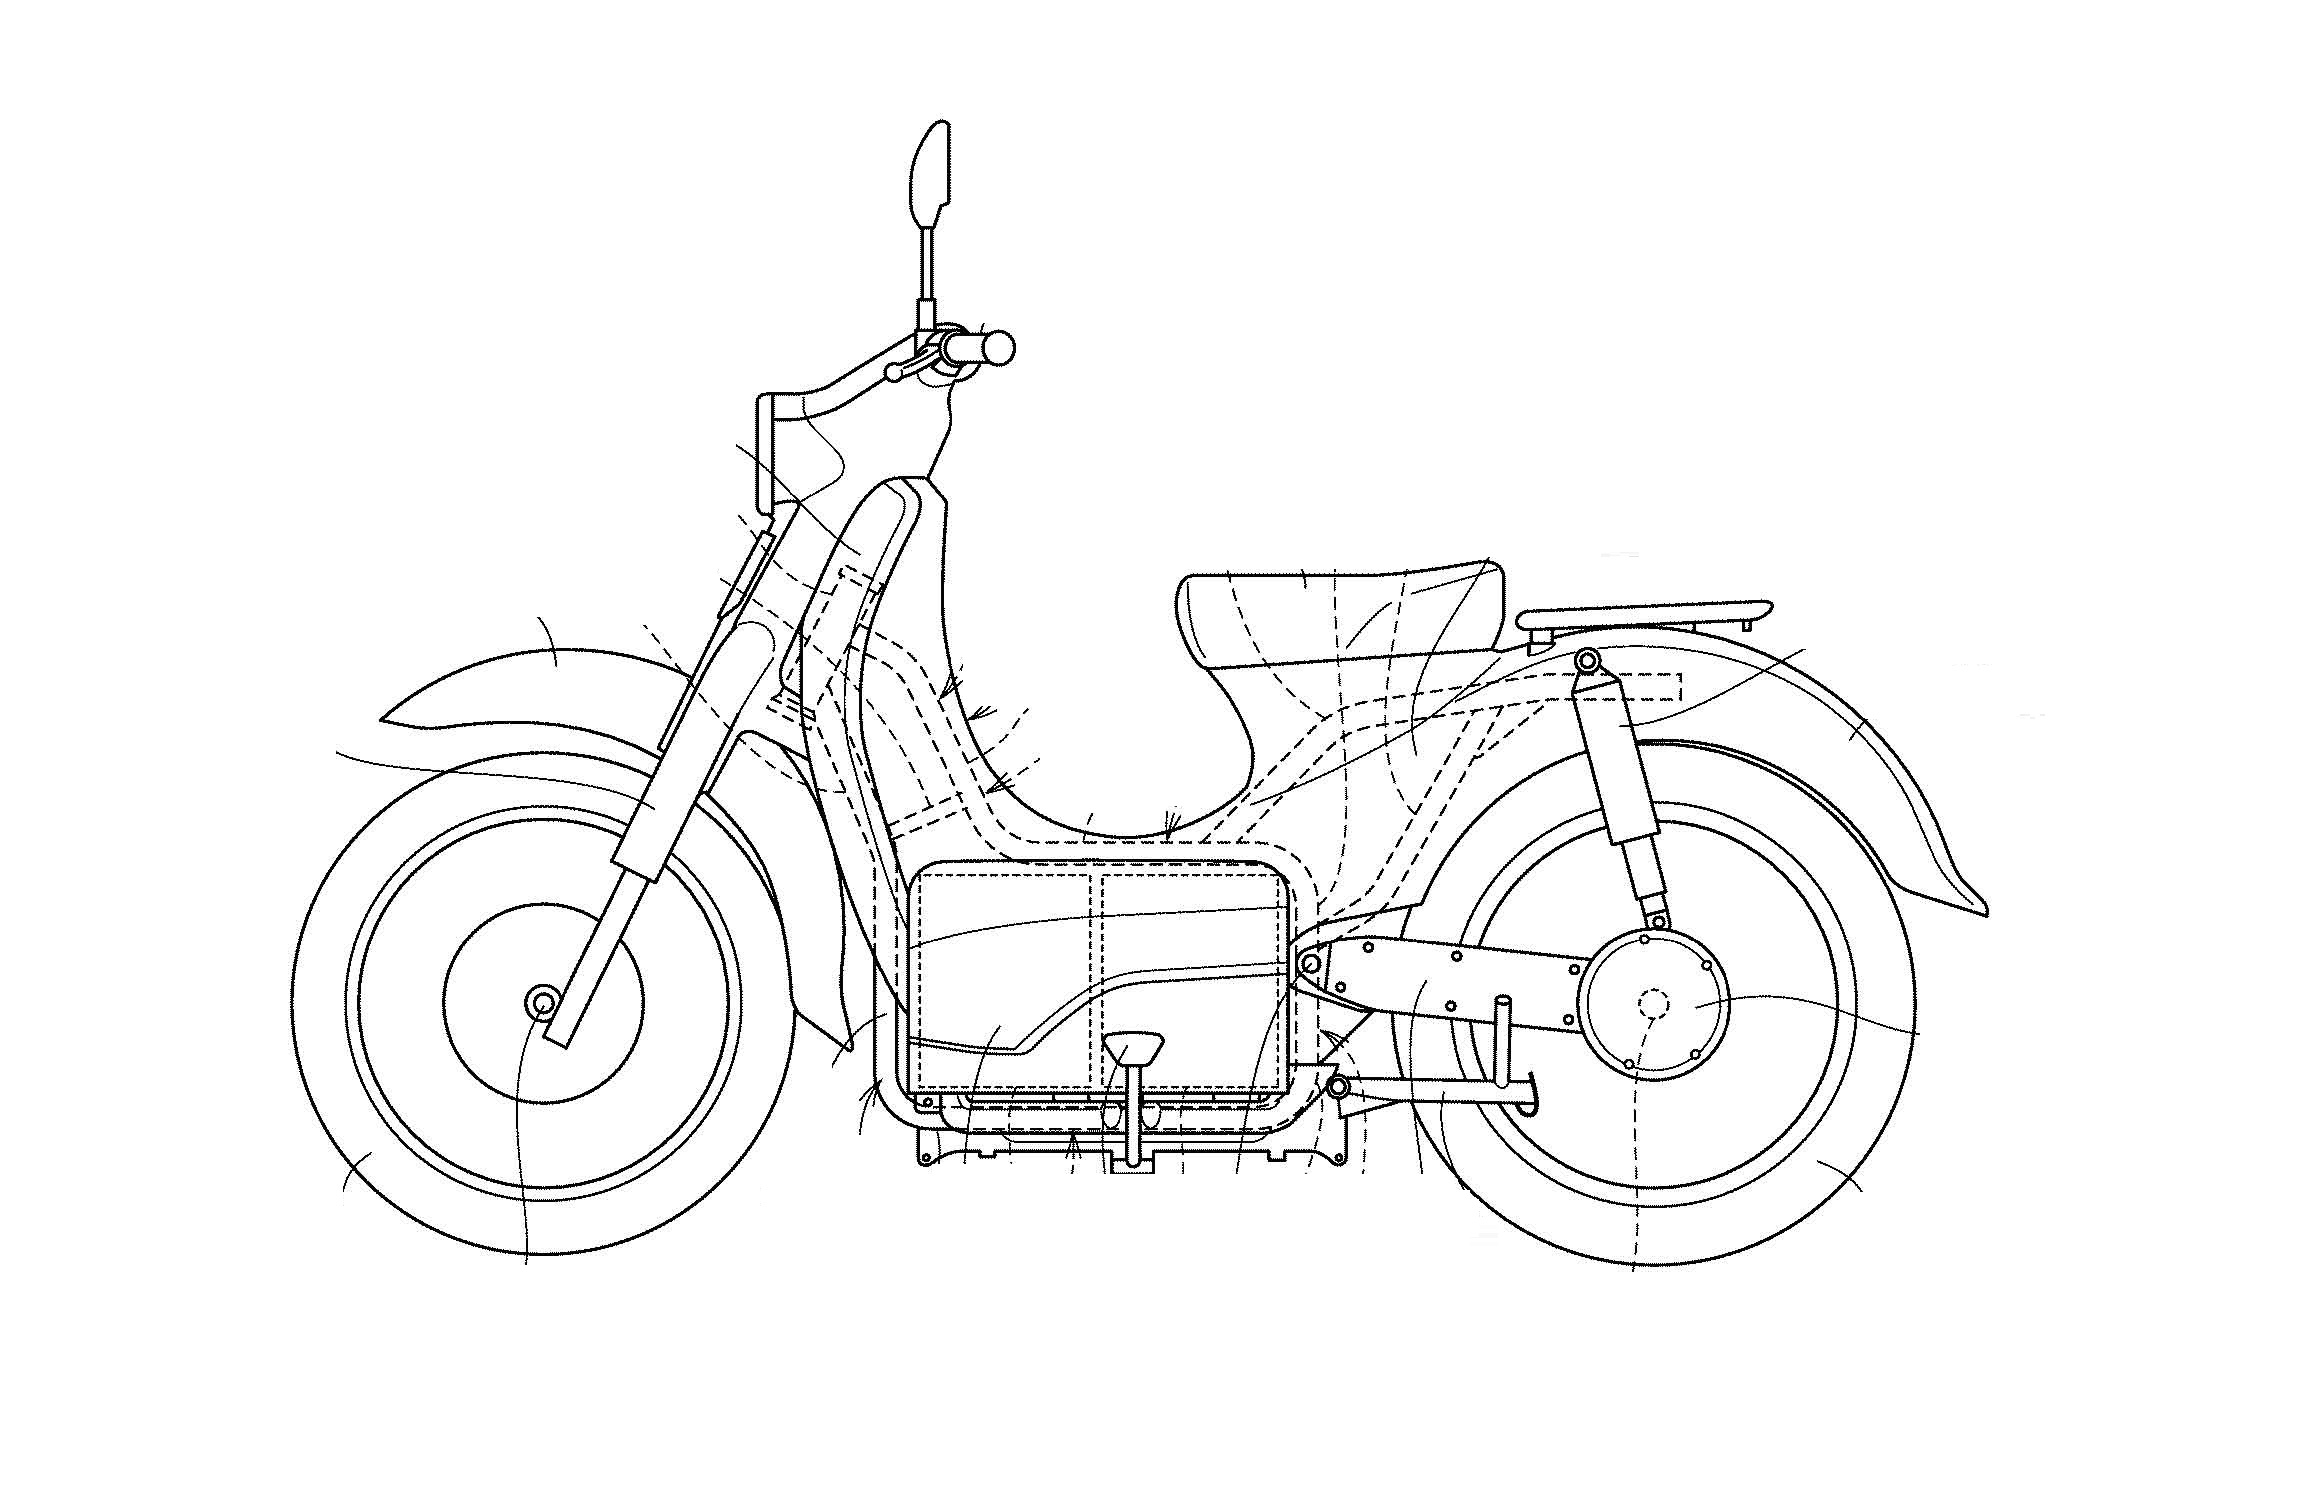 Honda Developing The EV-Cub With Swappable Batteries